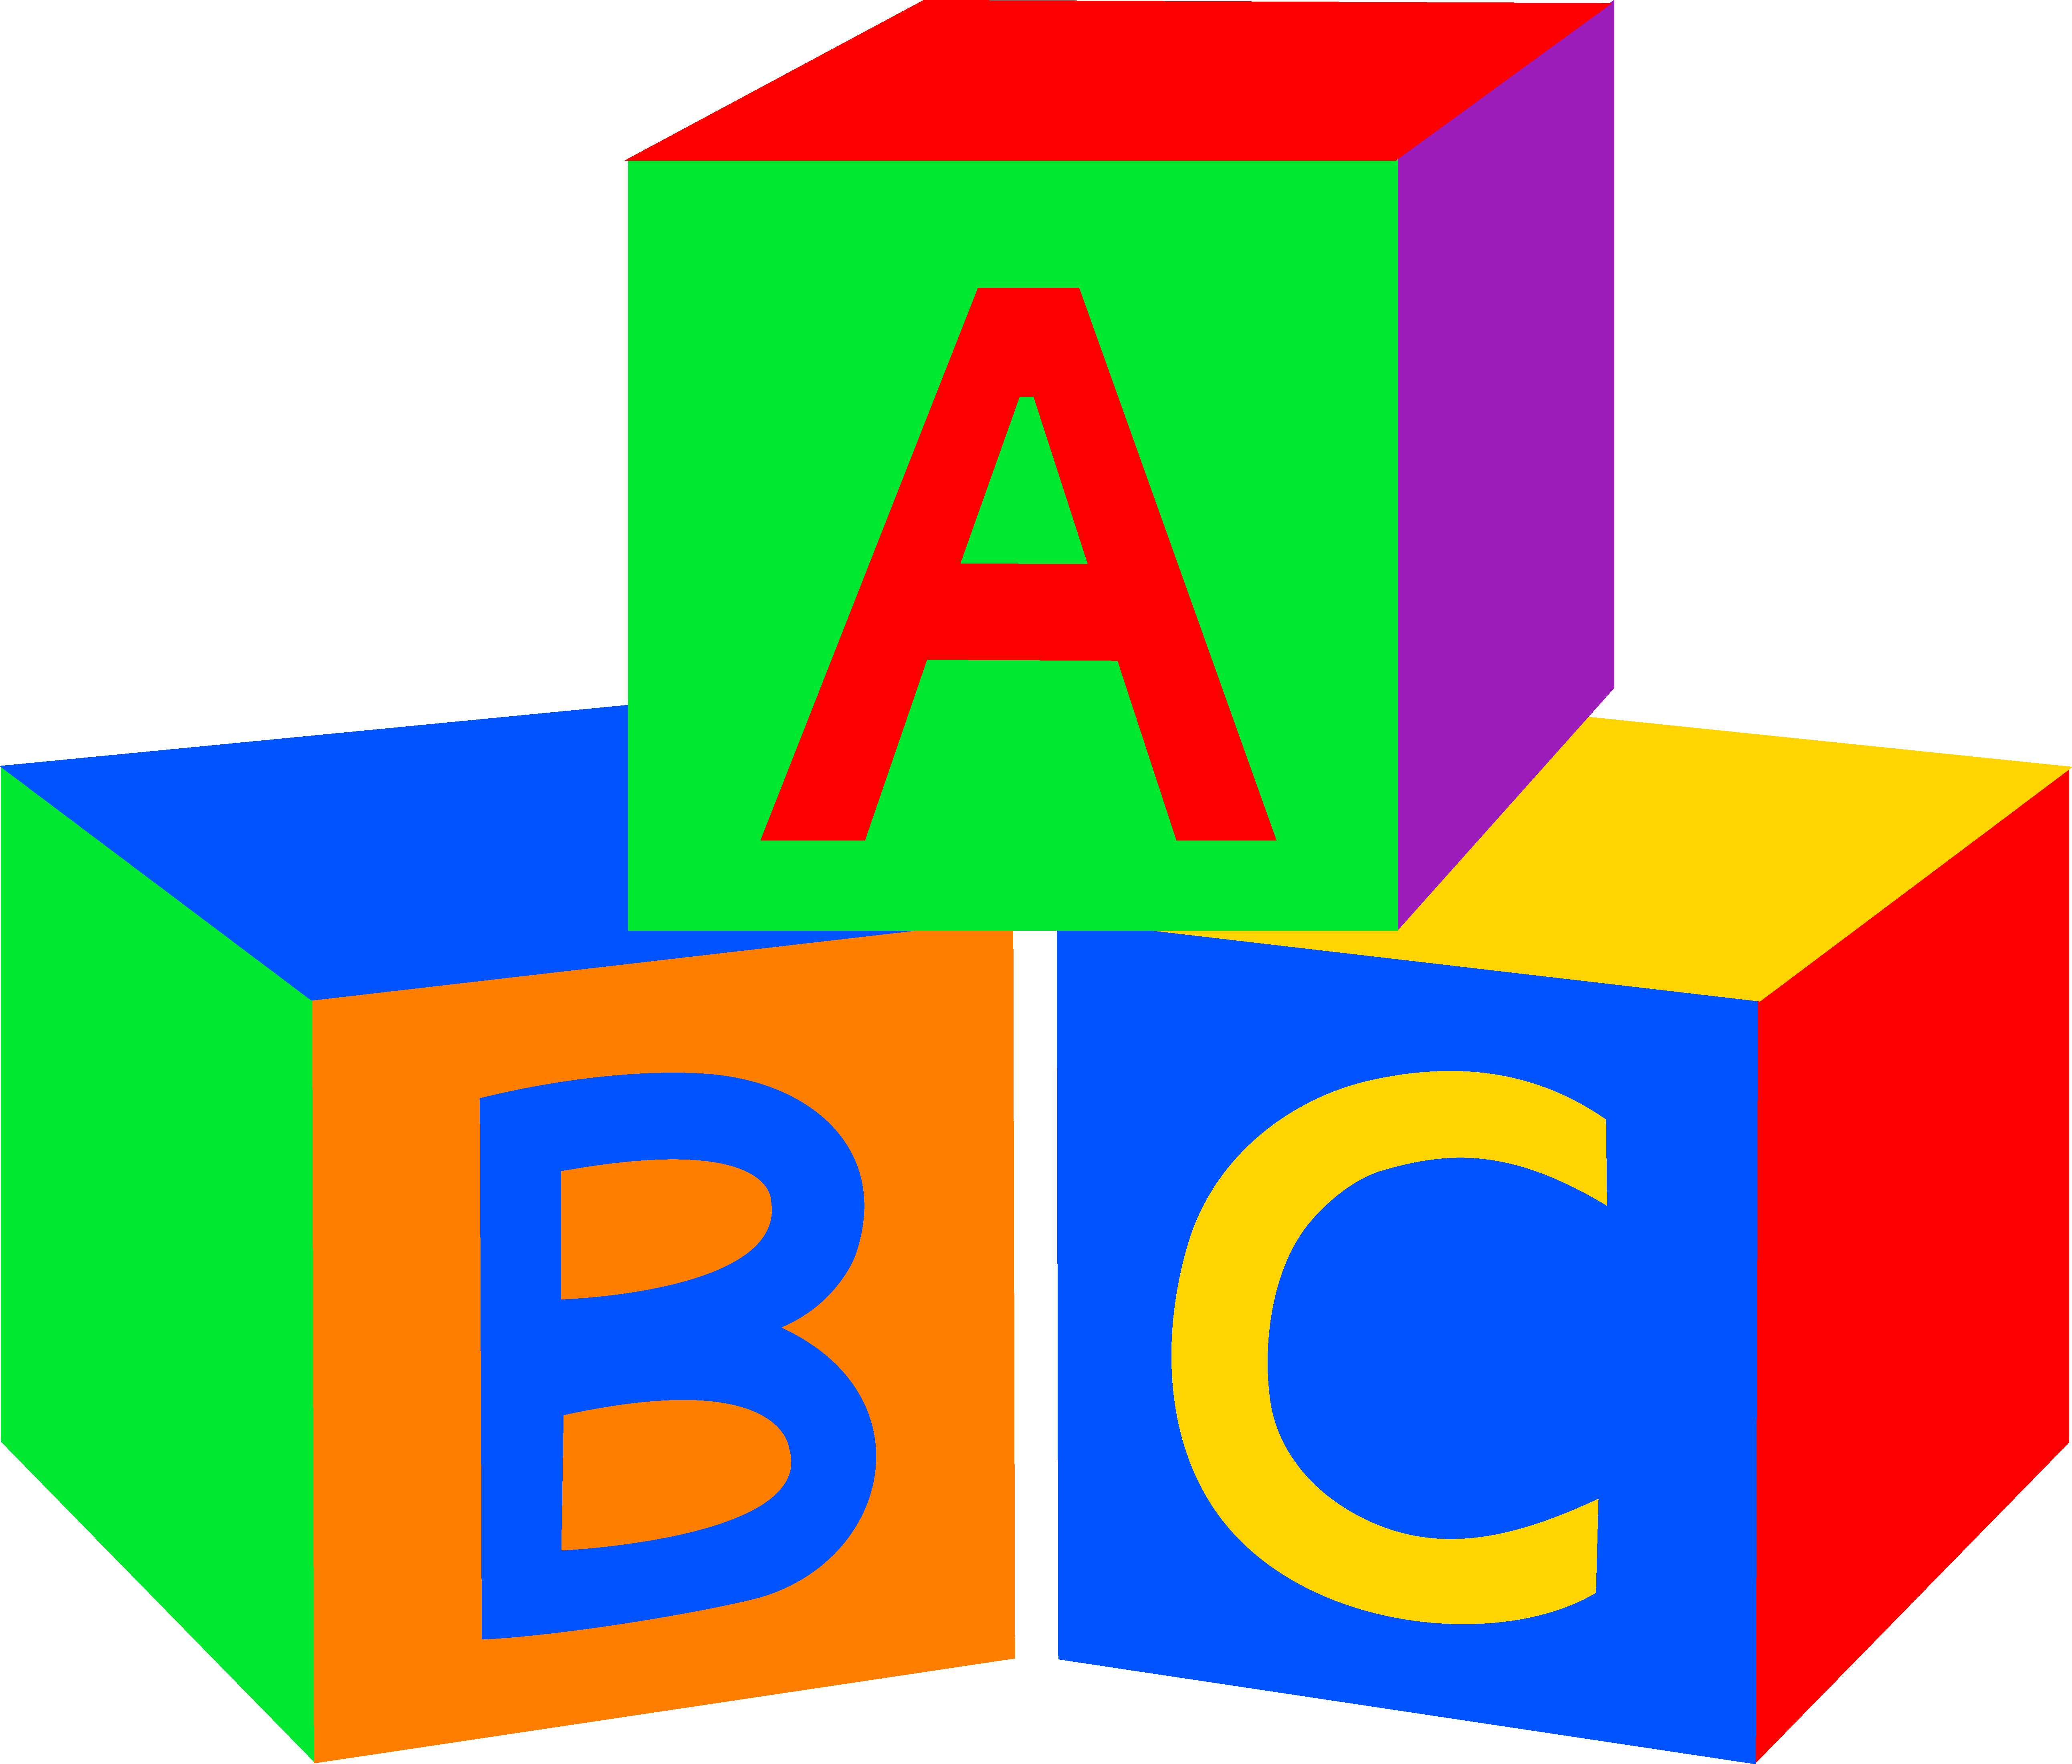 Free fre cliparts abc. Cube clipart unifex